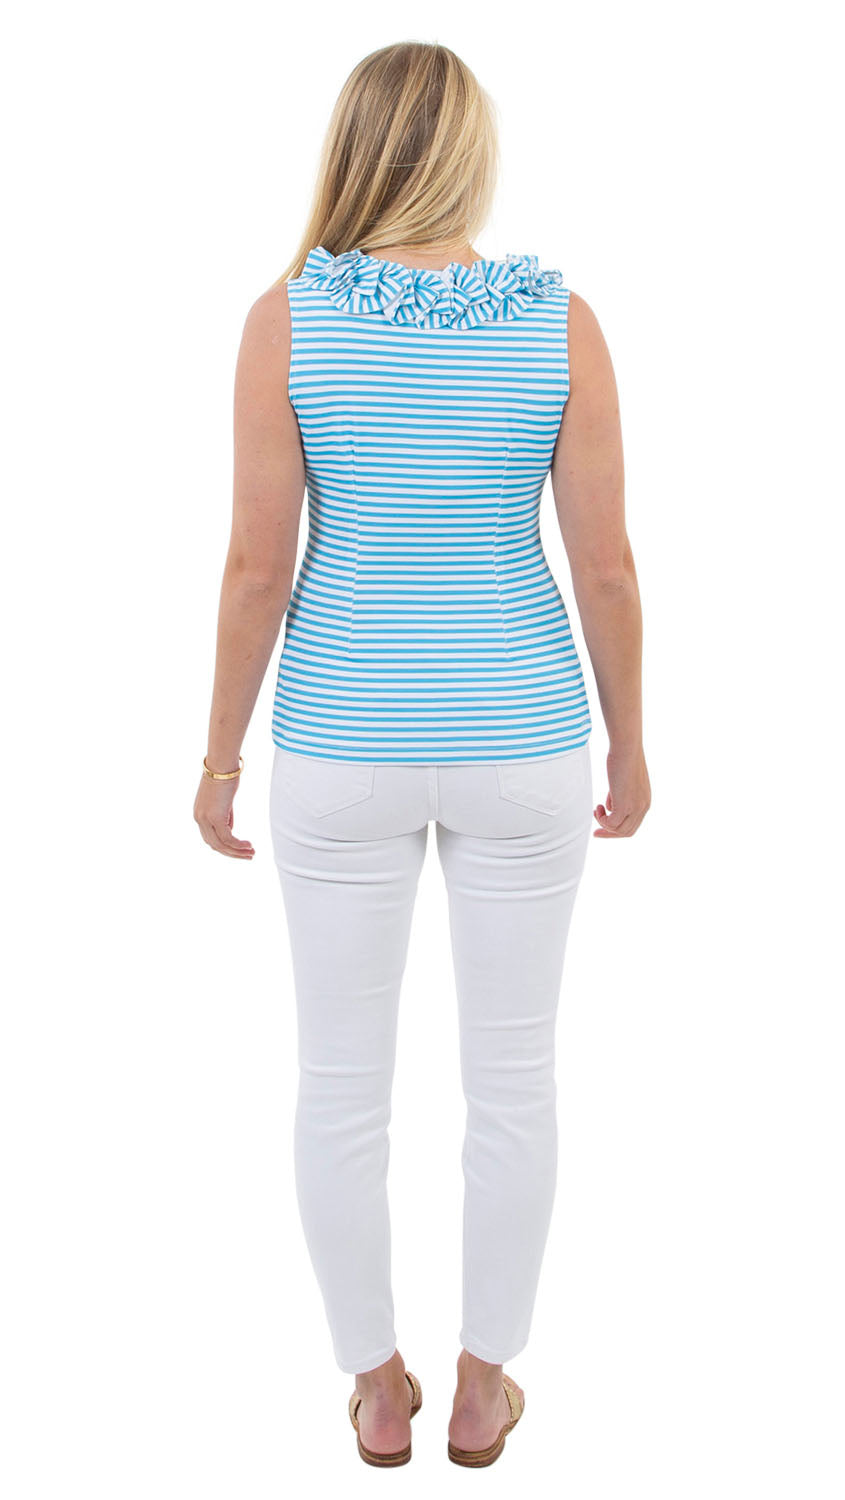 Cricket Top Sleeveless - Aquarius/White Stripe